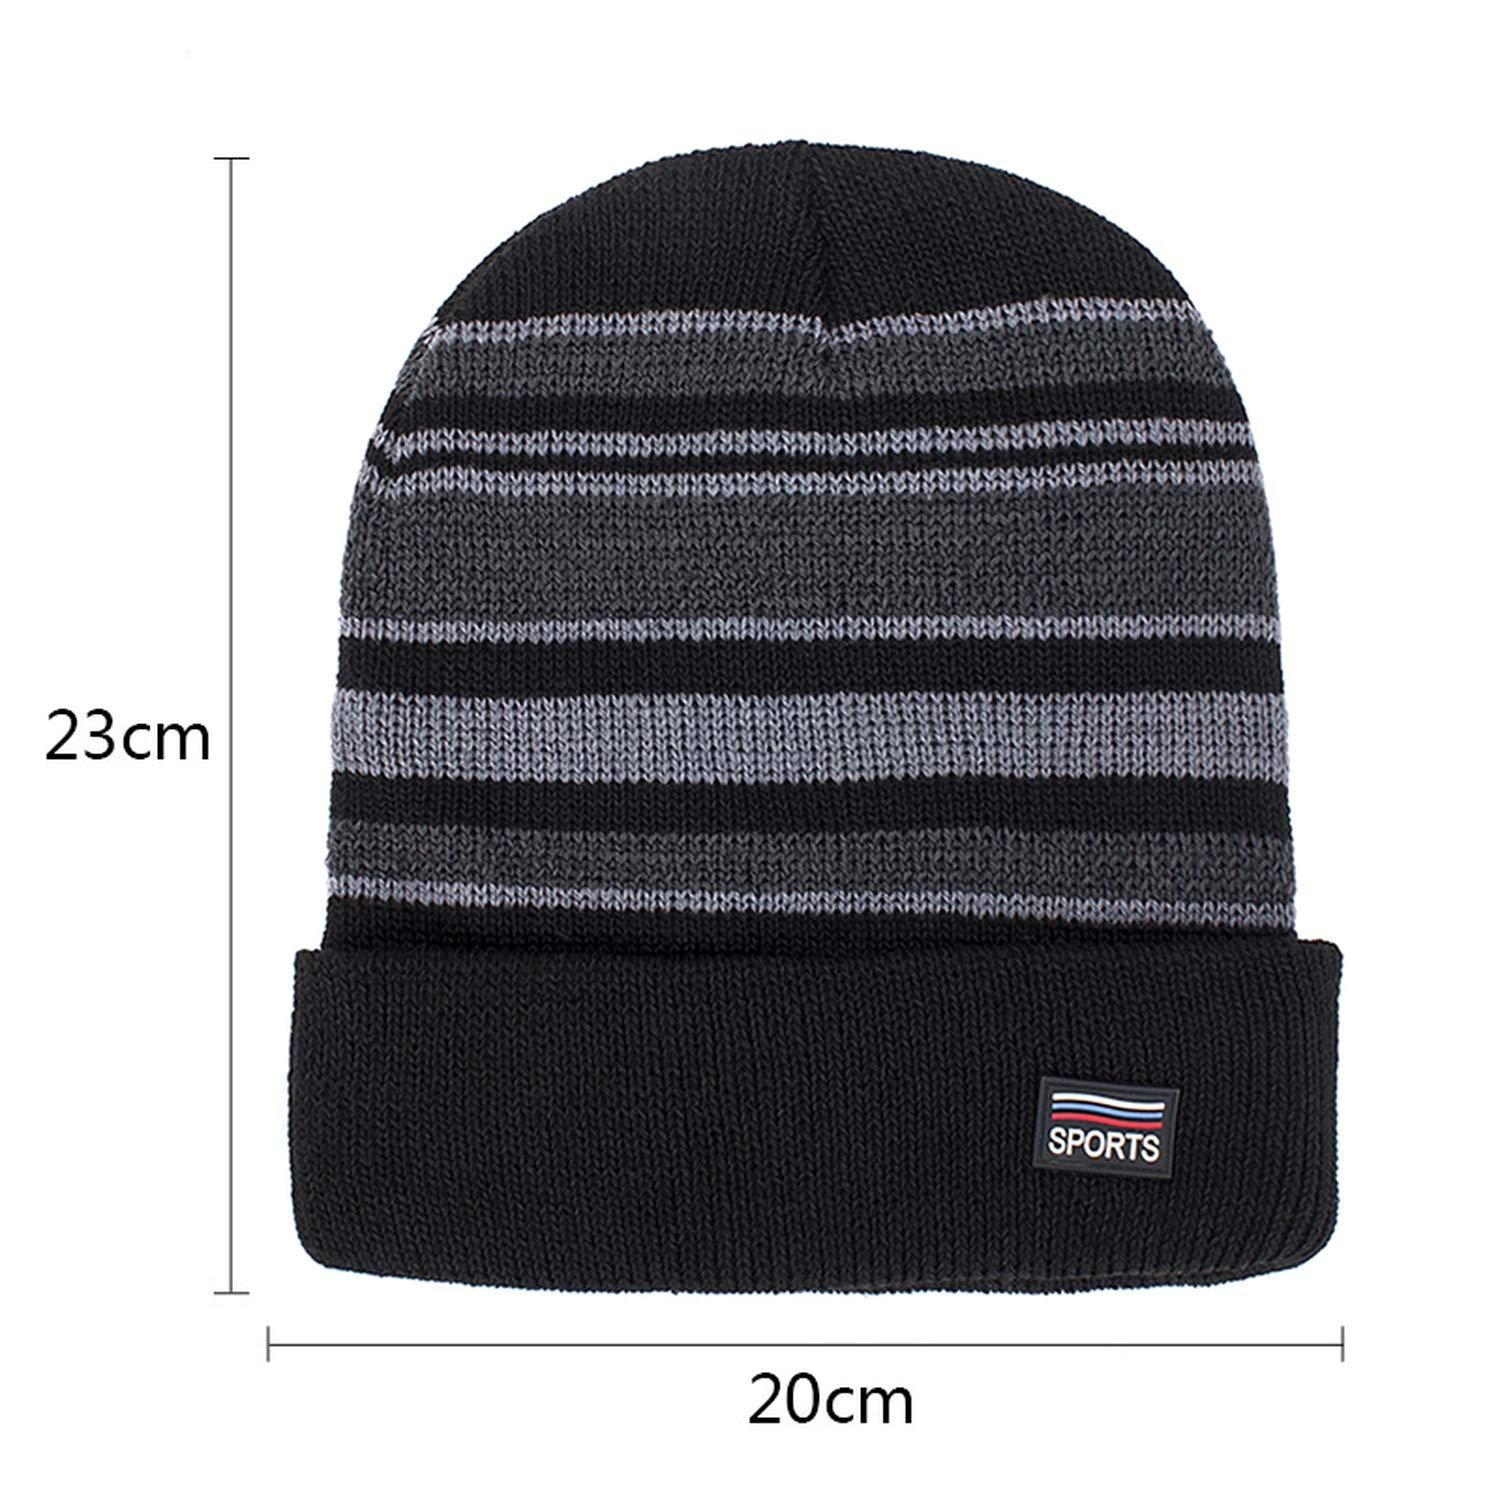 XINBONG Winter Hat Woman Man Unisex Casual Striped Cap Skullies Cotton Warm Outdoors for Boys Hat Gorros Bonnet